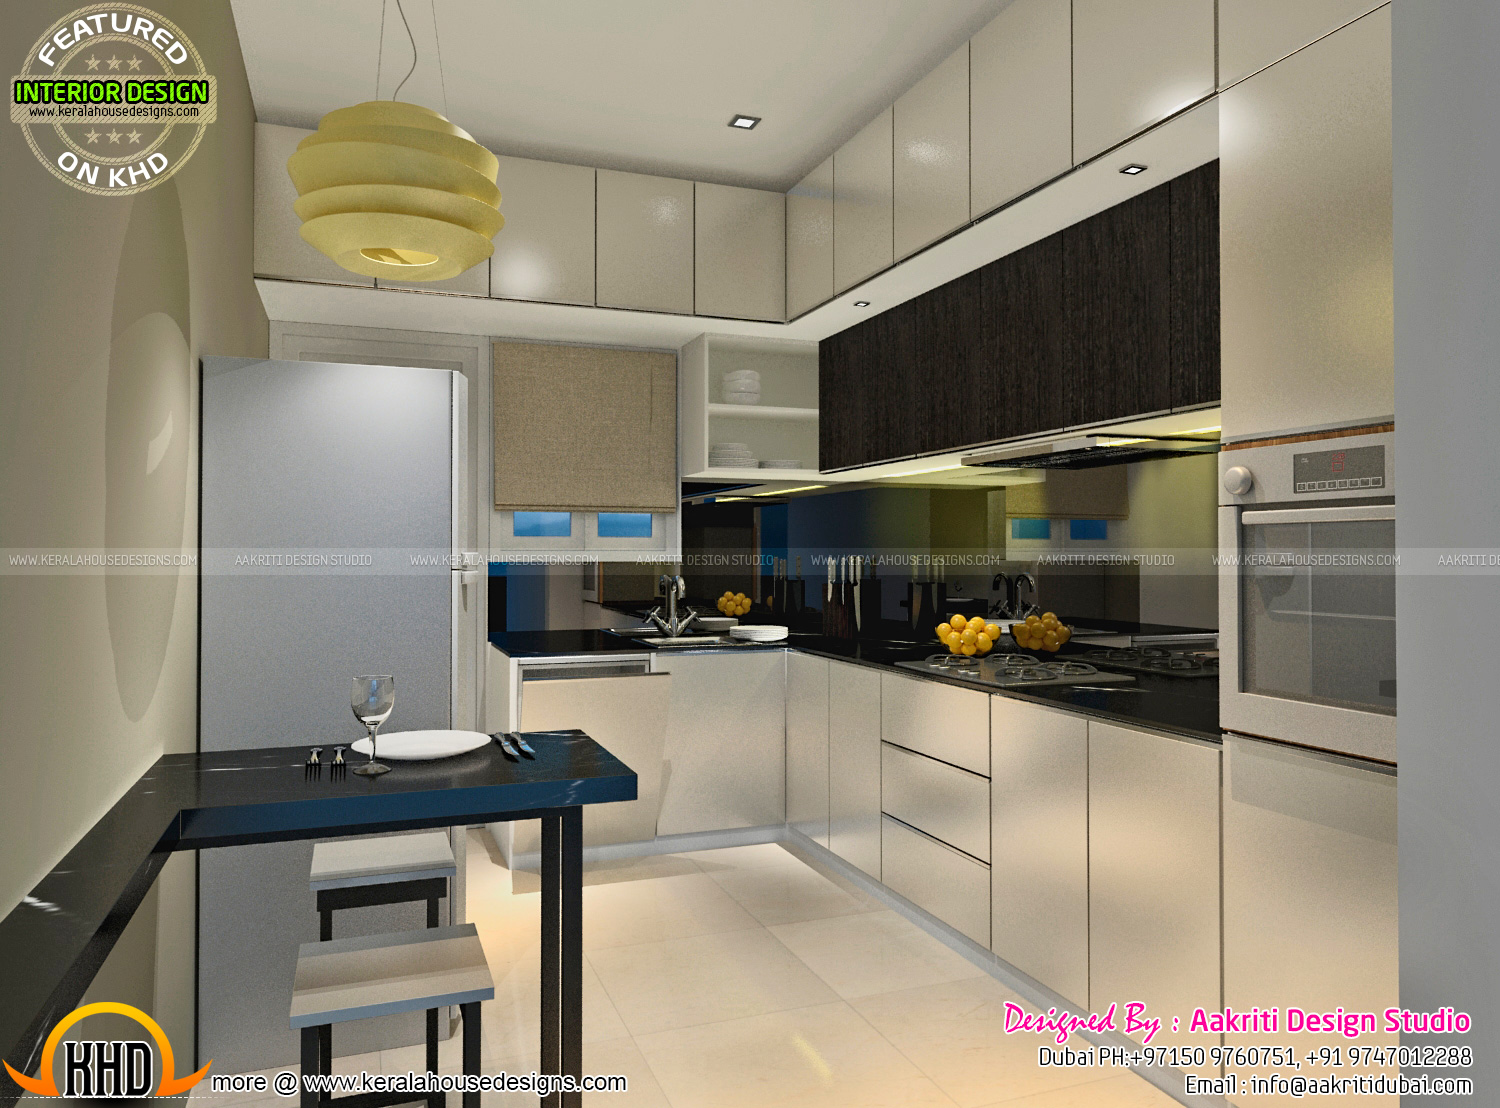 Dining kitchen wash area interior kerala home design for Interior design images kitchen